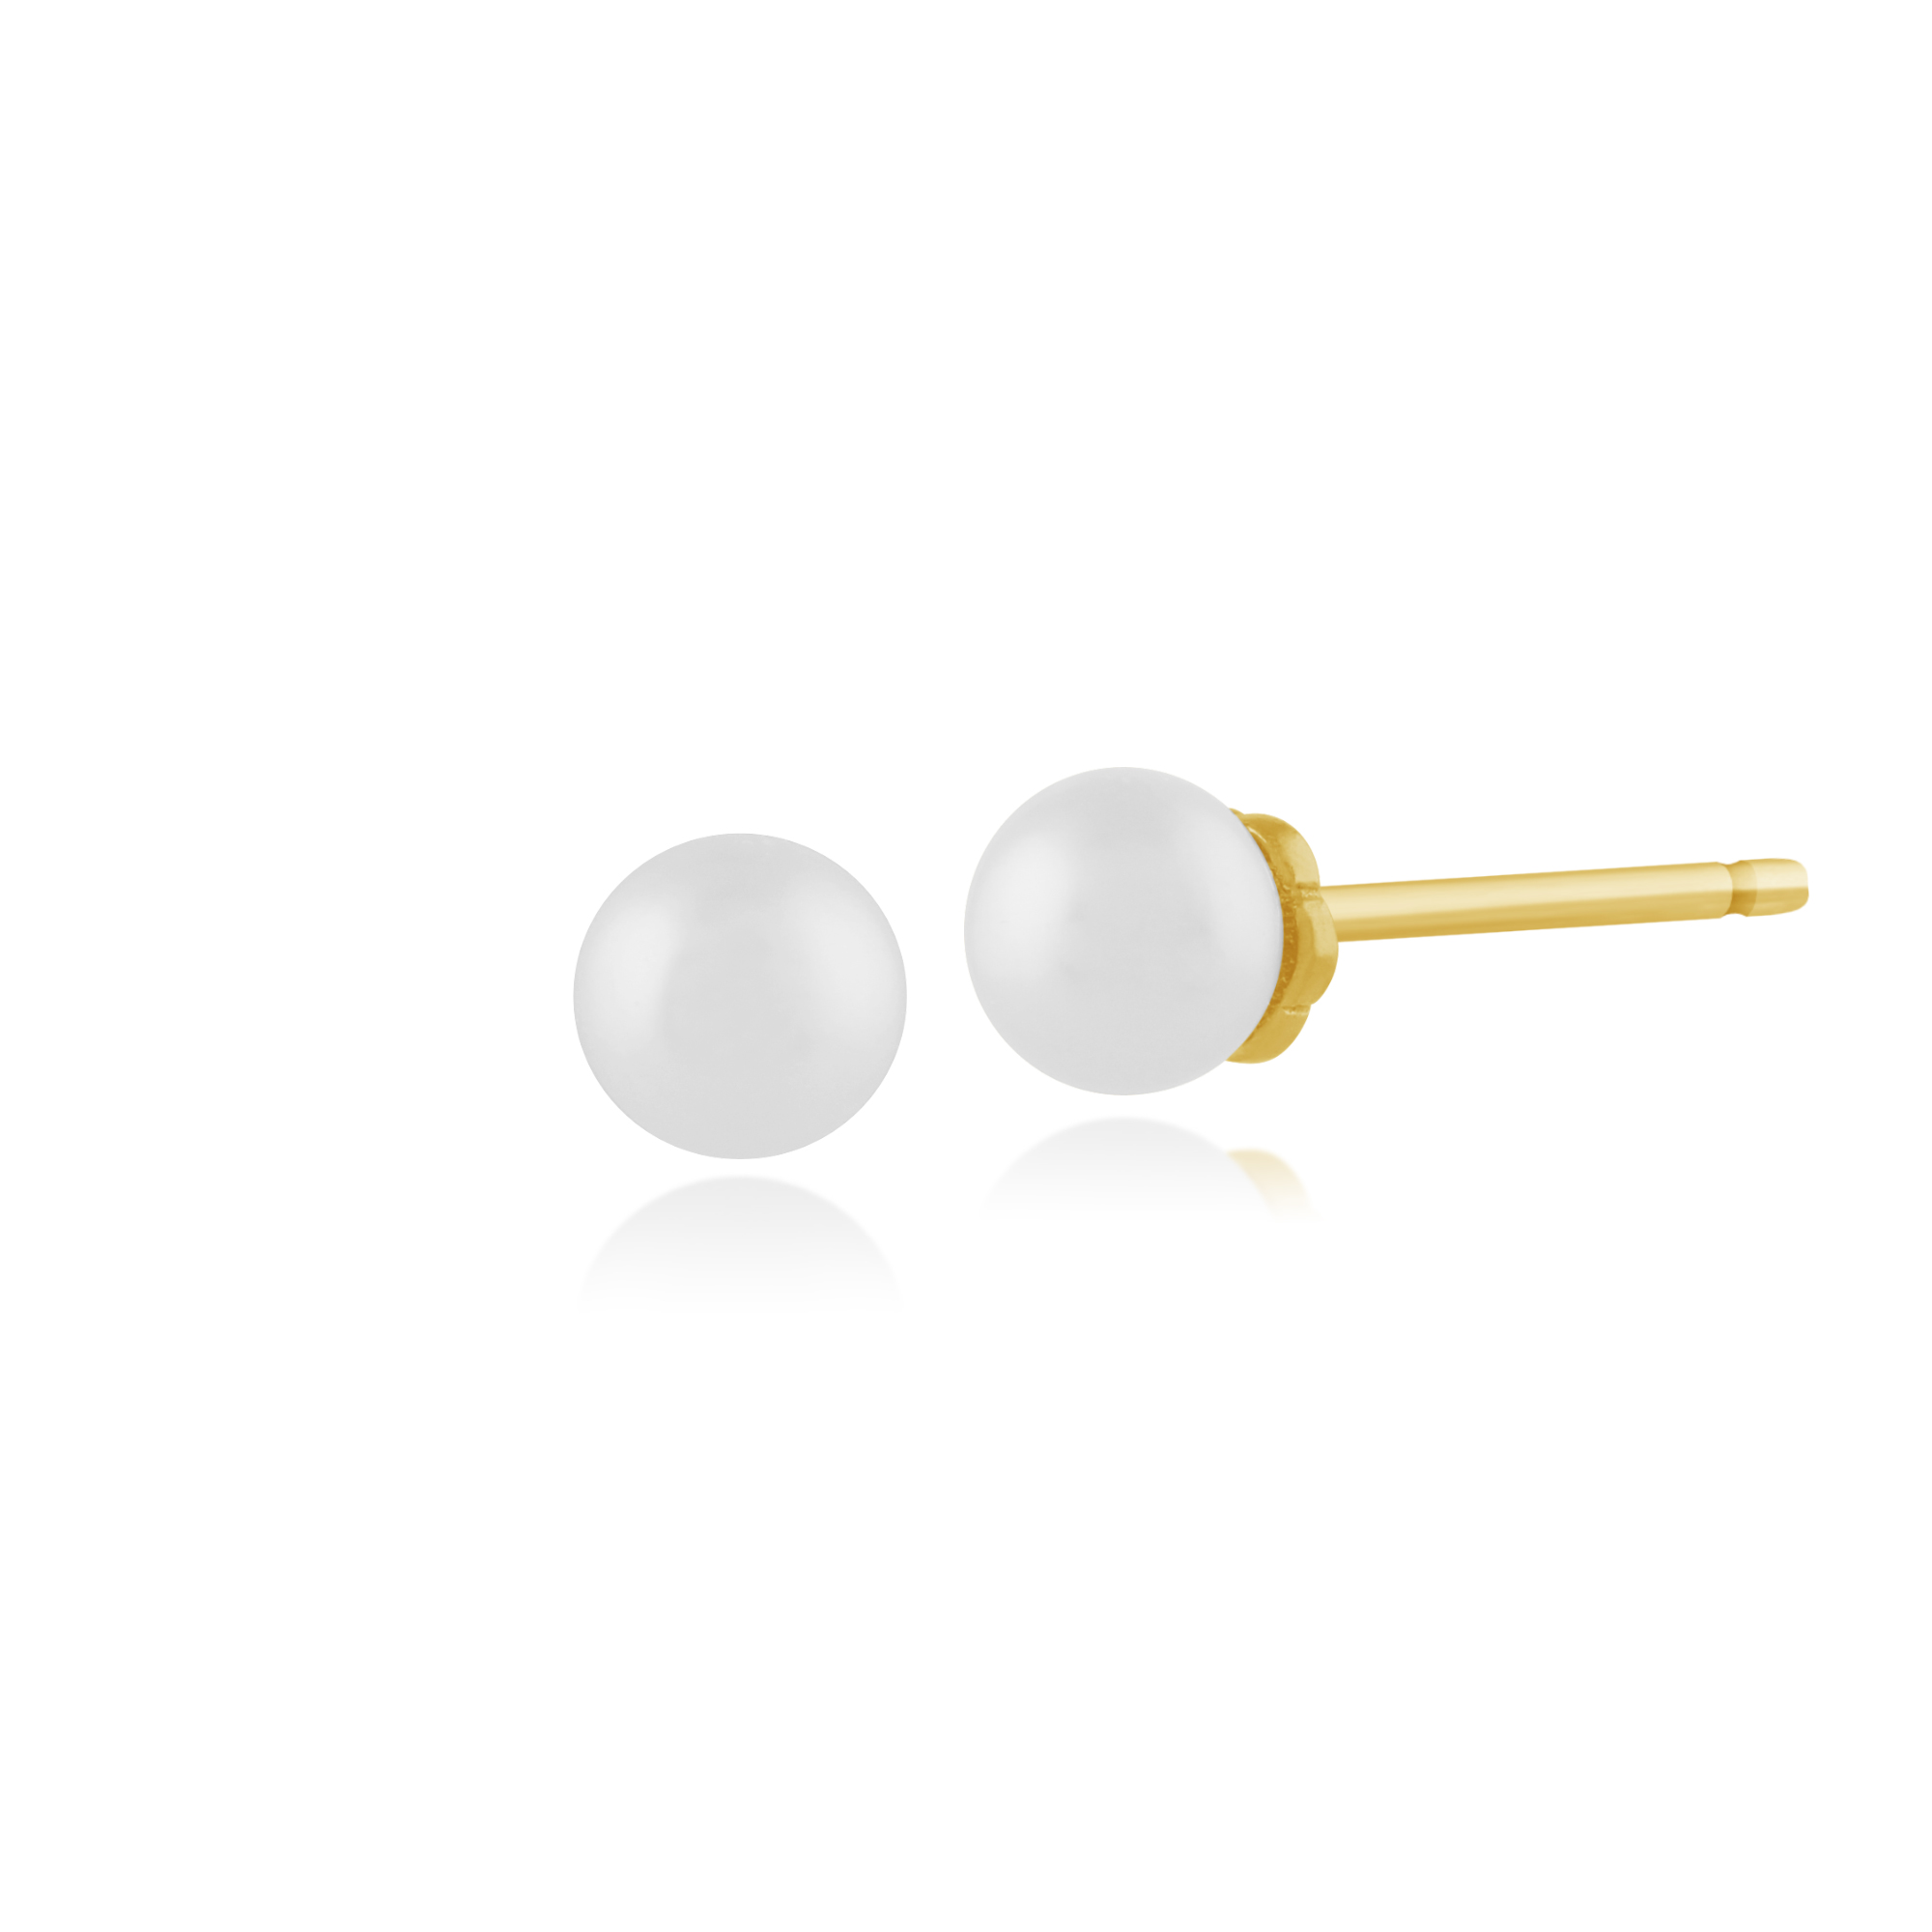 Gemondo 925 Gold Plated Sterling Silver 0.86ct Freshwater Pearl Stud Earrings